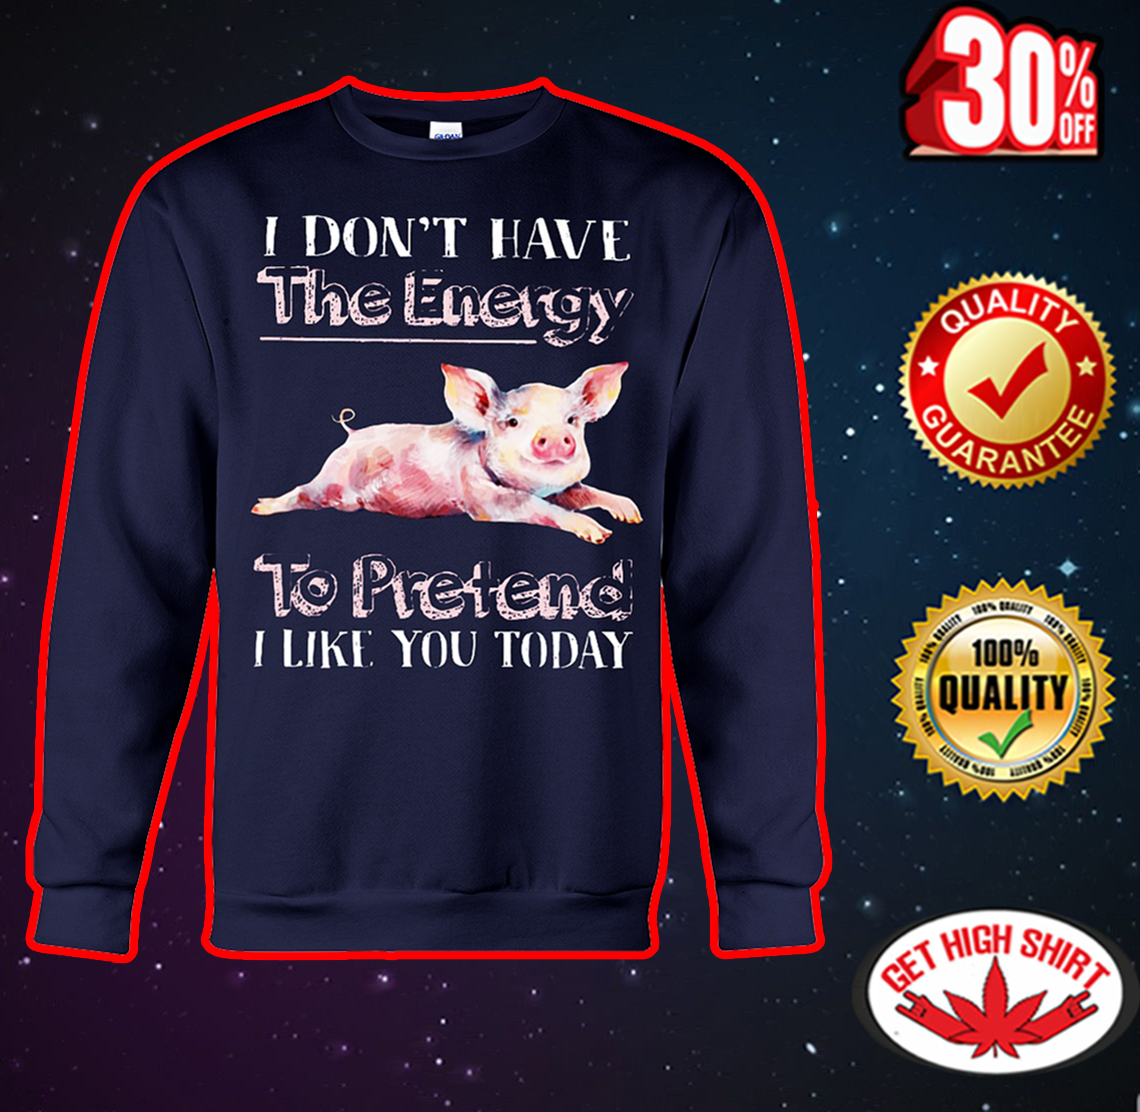 Pig I don't have the energy to pretend I like you today sweatshirt